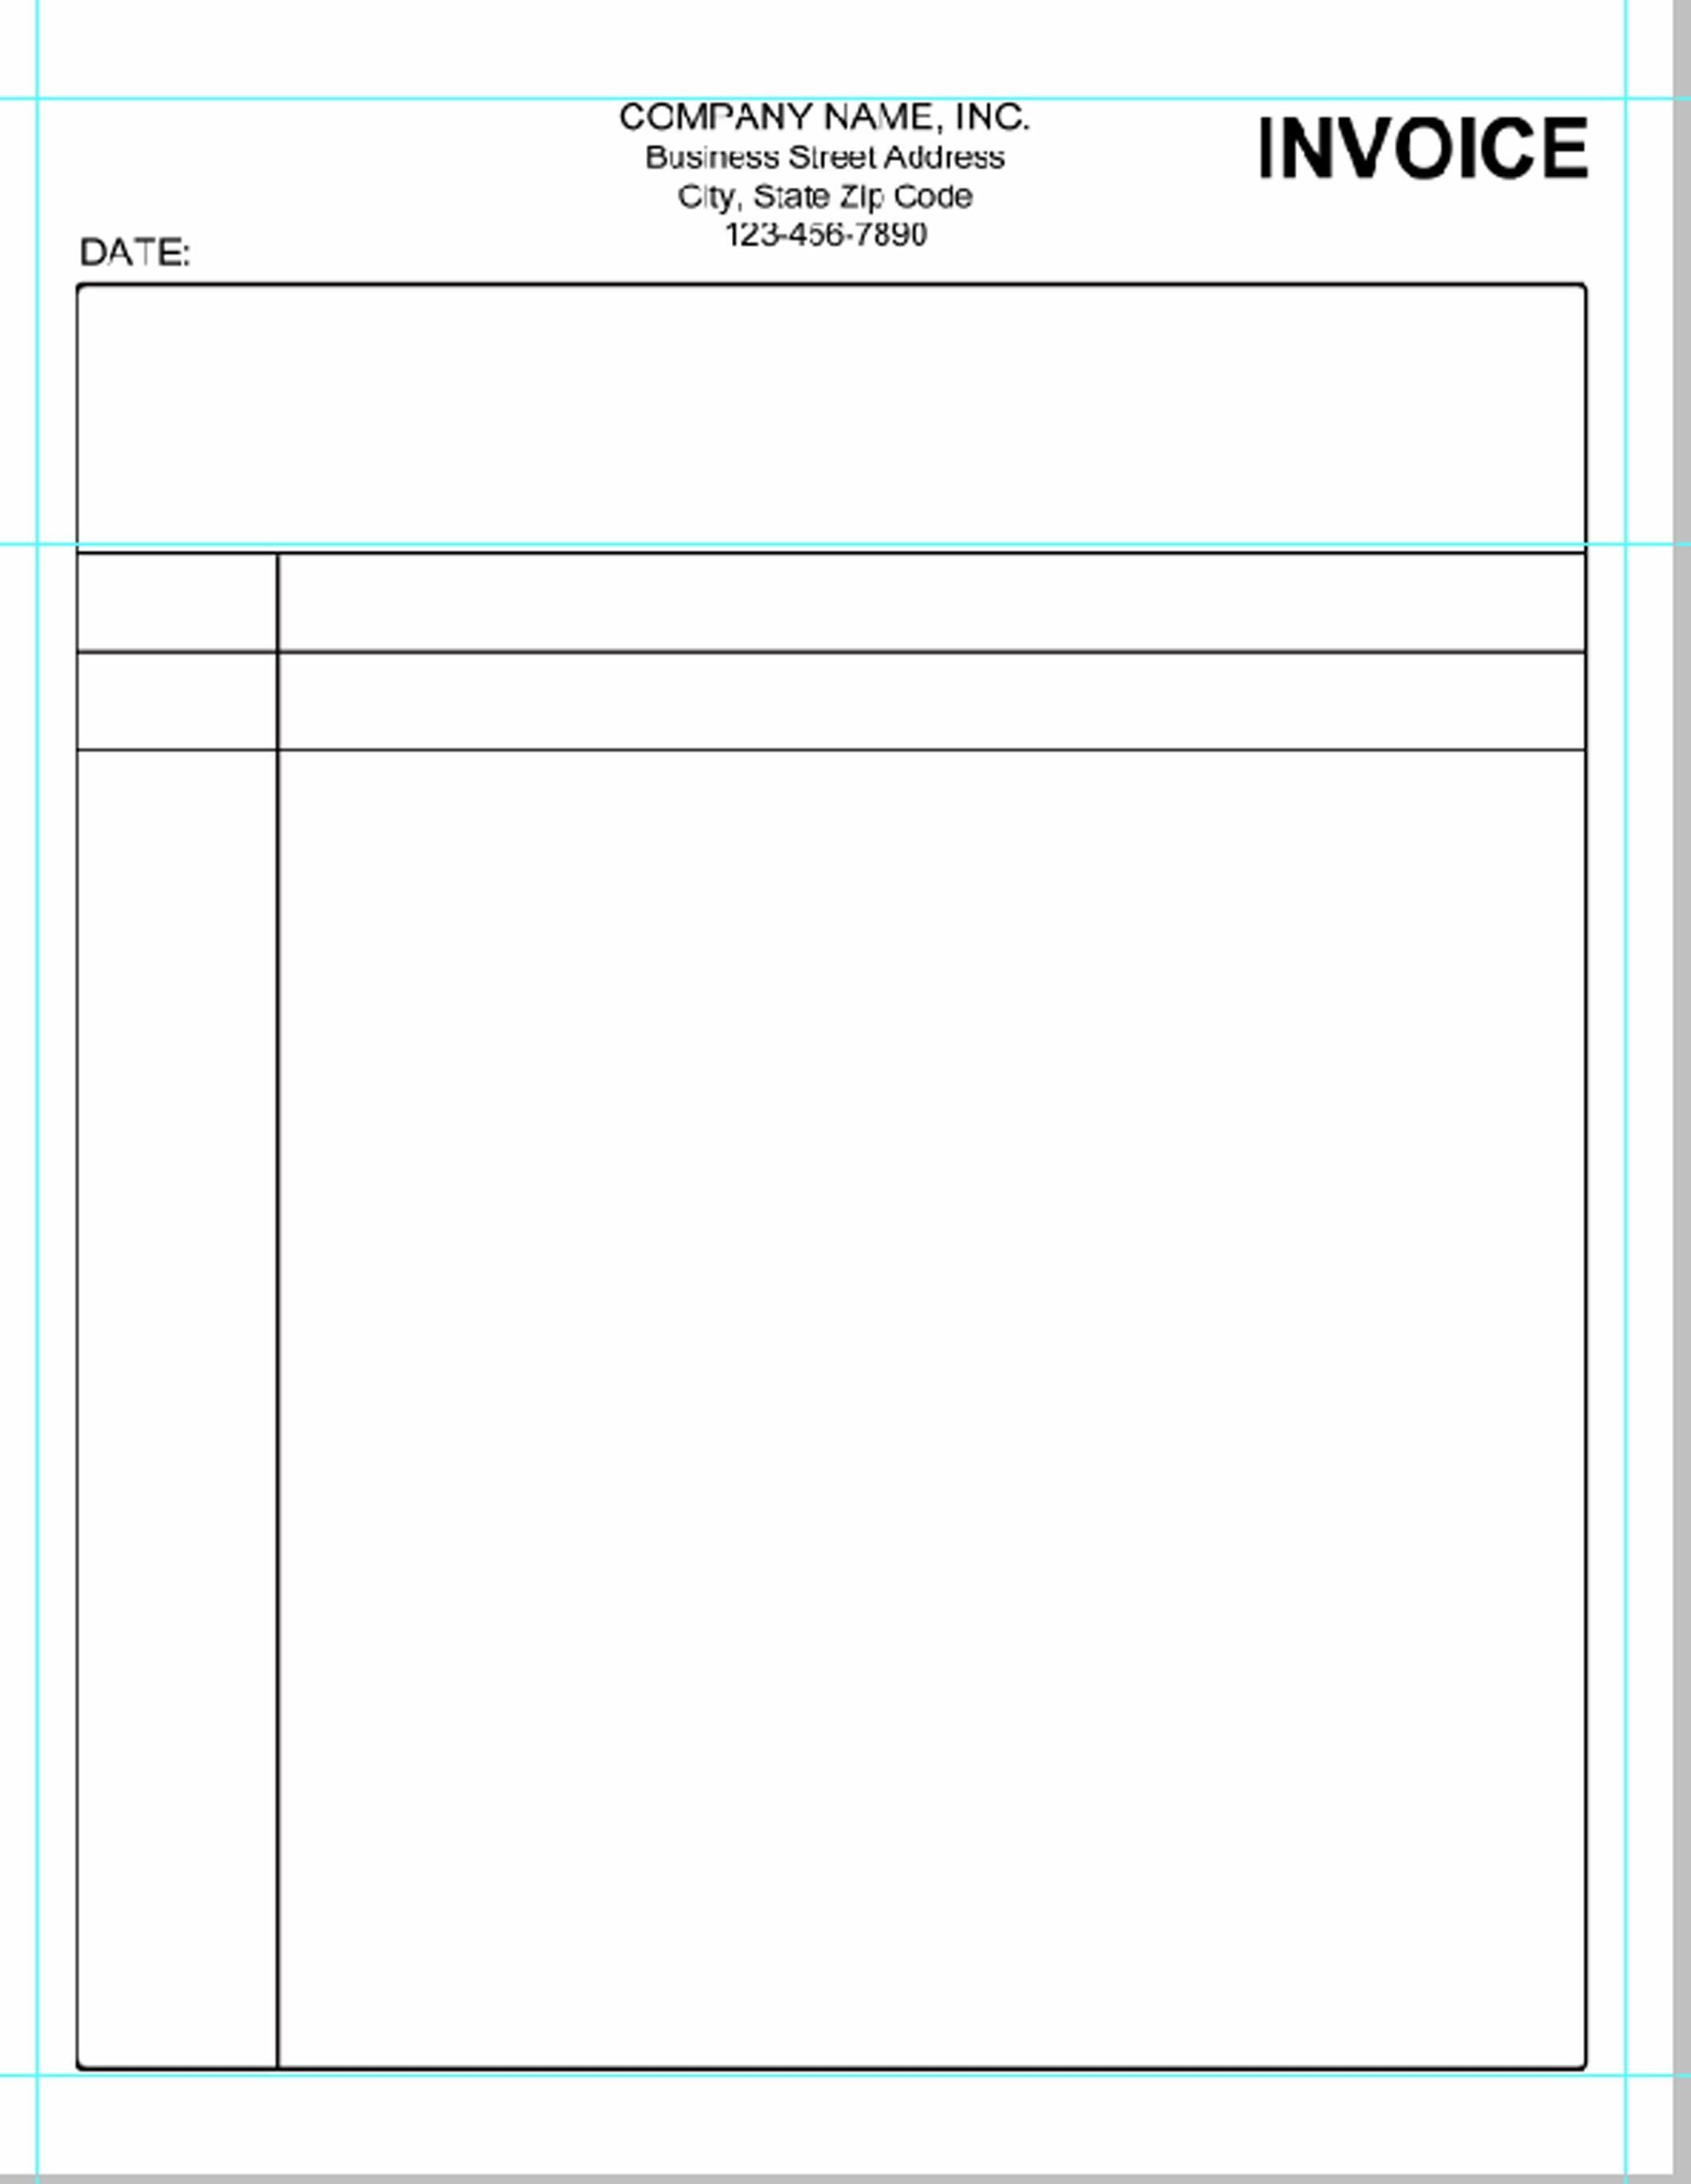 002 Formidable Receipt Template Microsoft Word High Definition  Invoice Free Money BlankFull